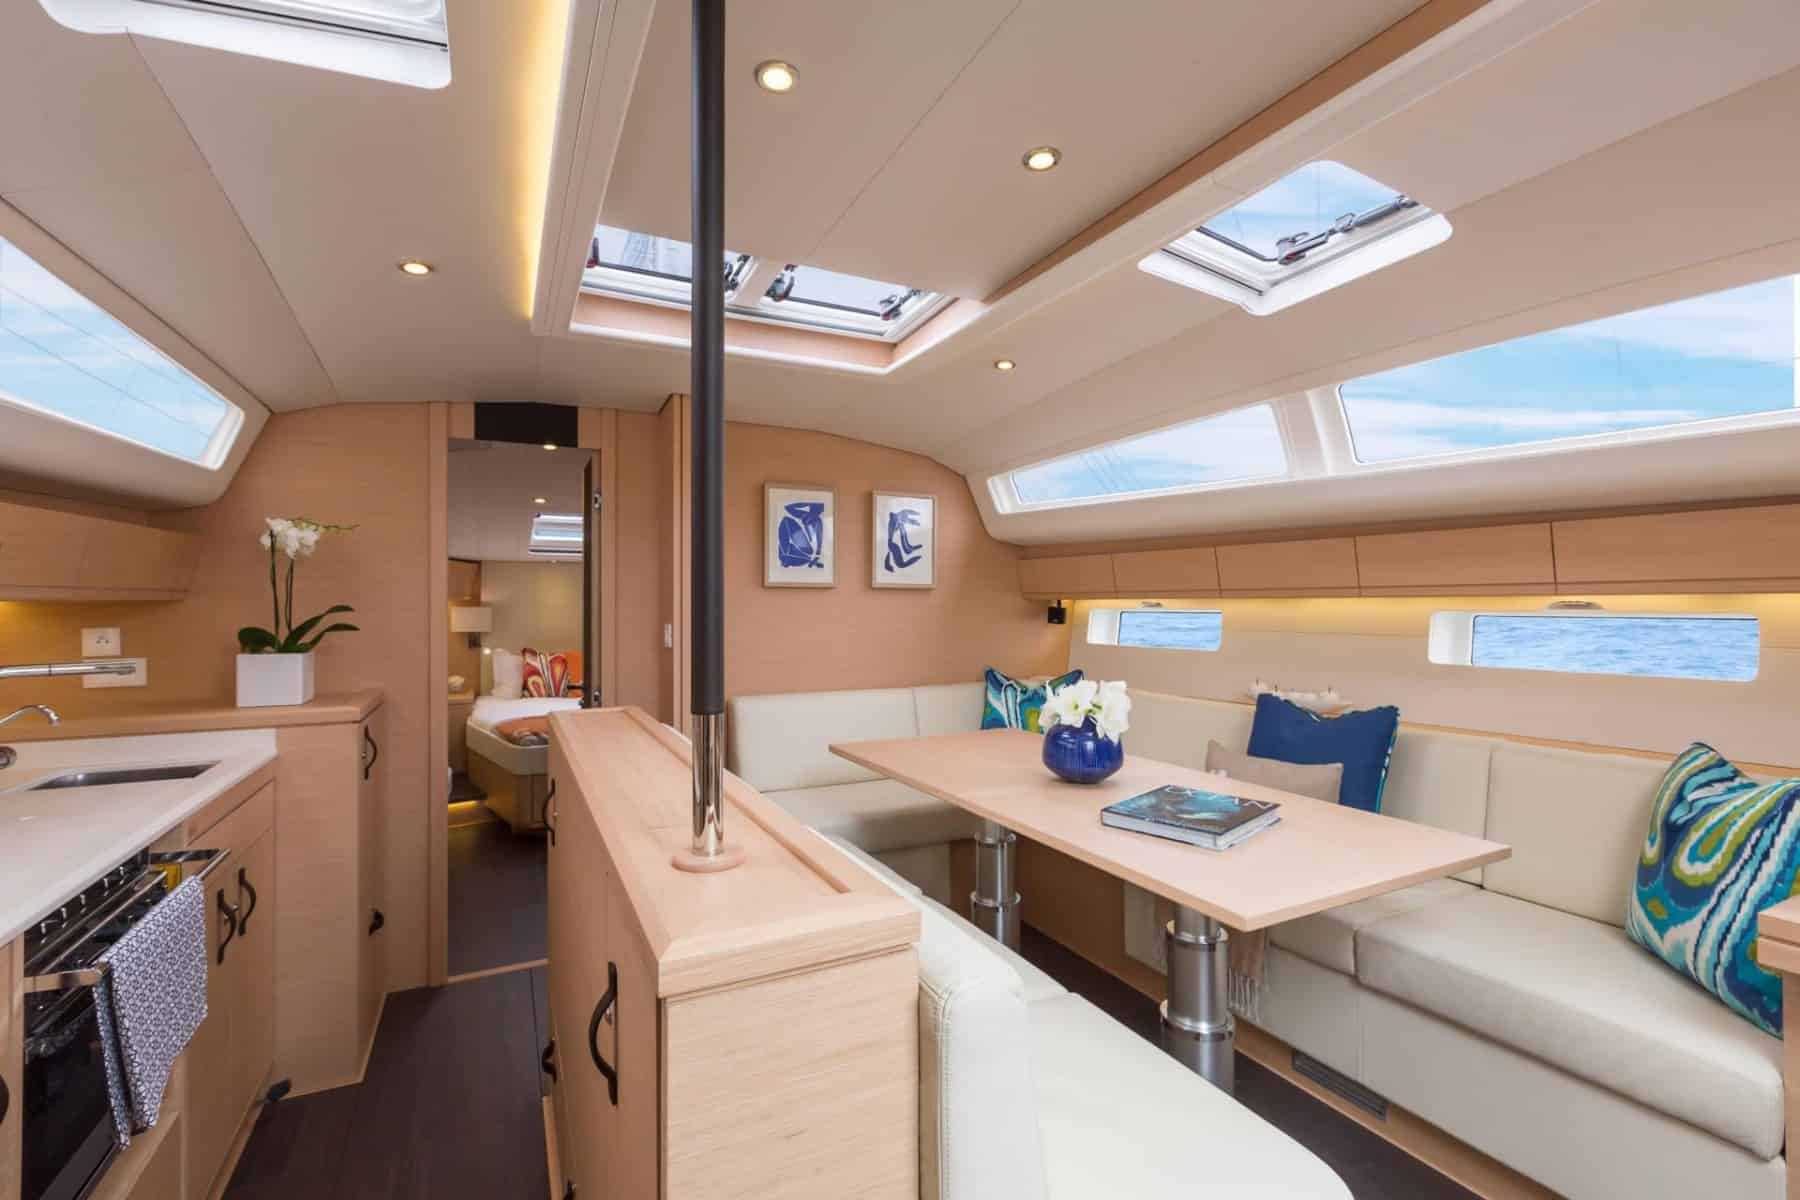 Jeanneau-54-interior-saloon-1-charter-ownership-yacht